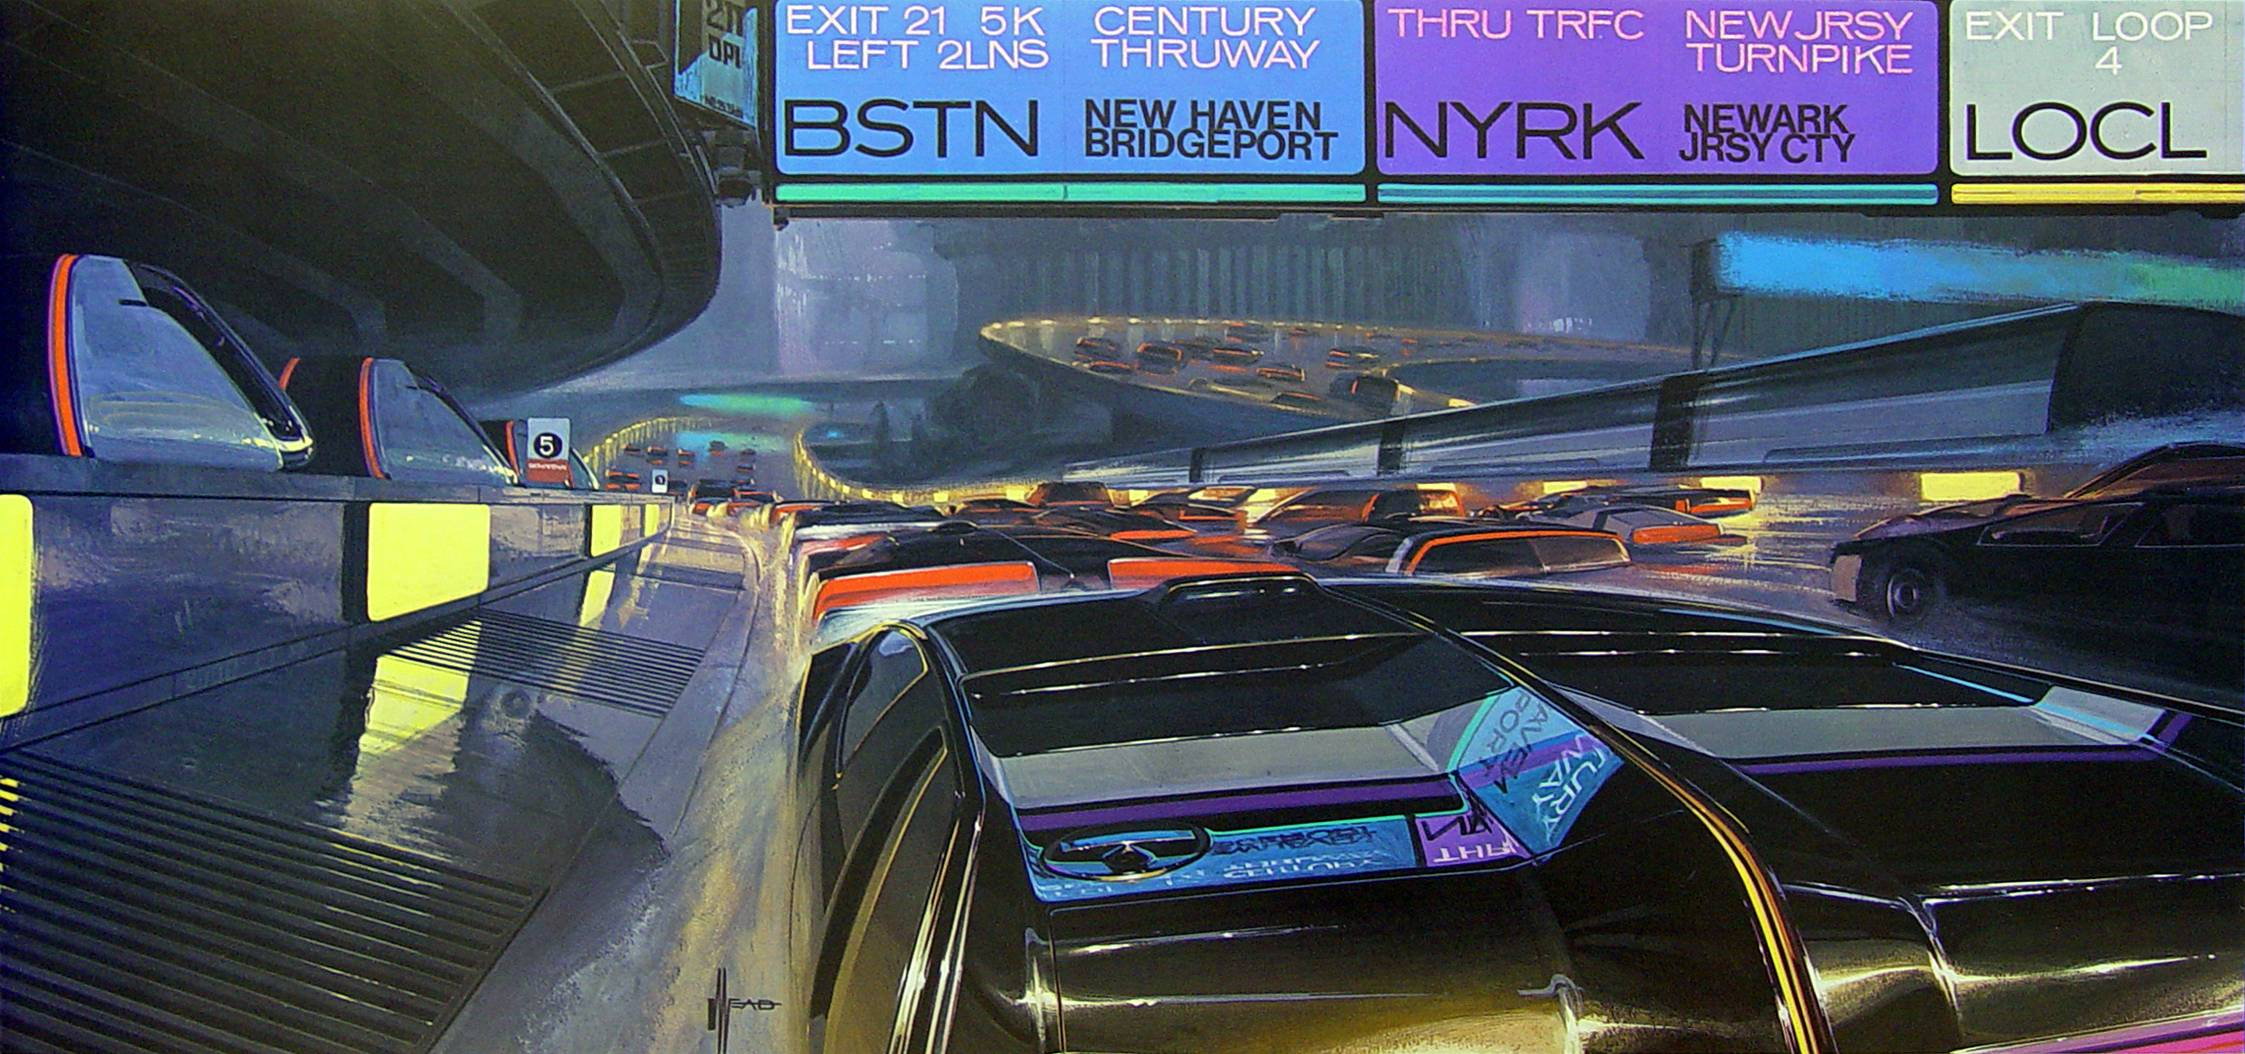 Syd Mead21